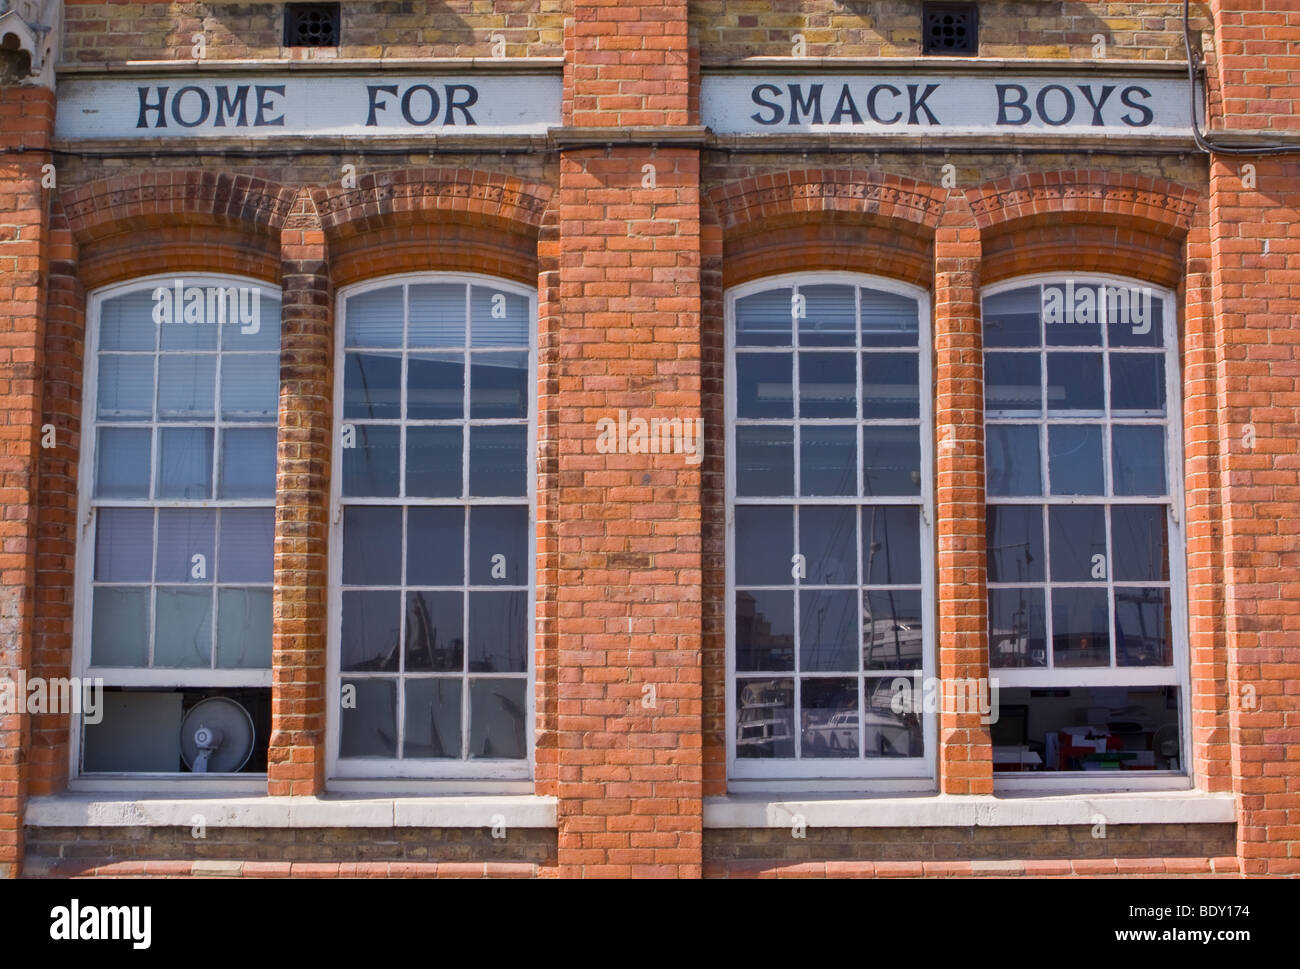 Home for Smack Boys Ramsgate Thanet Kent - Stock Image